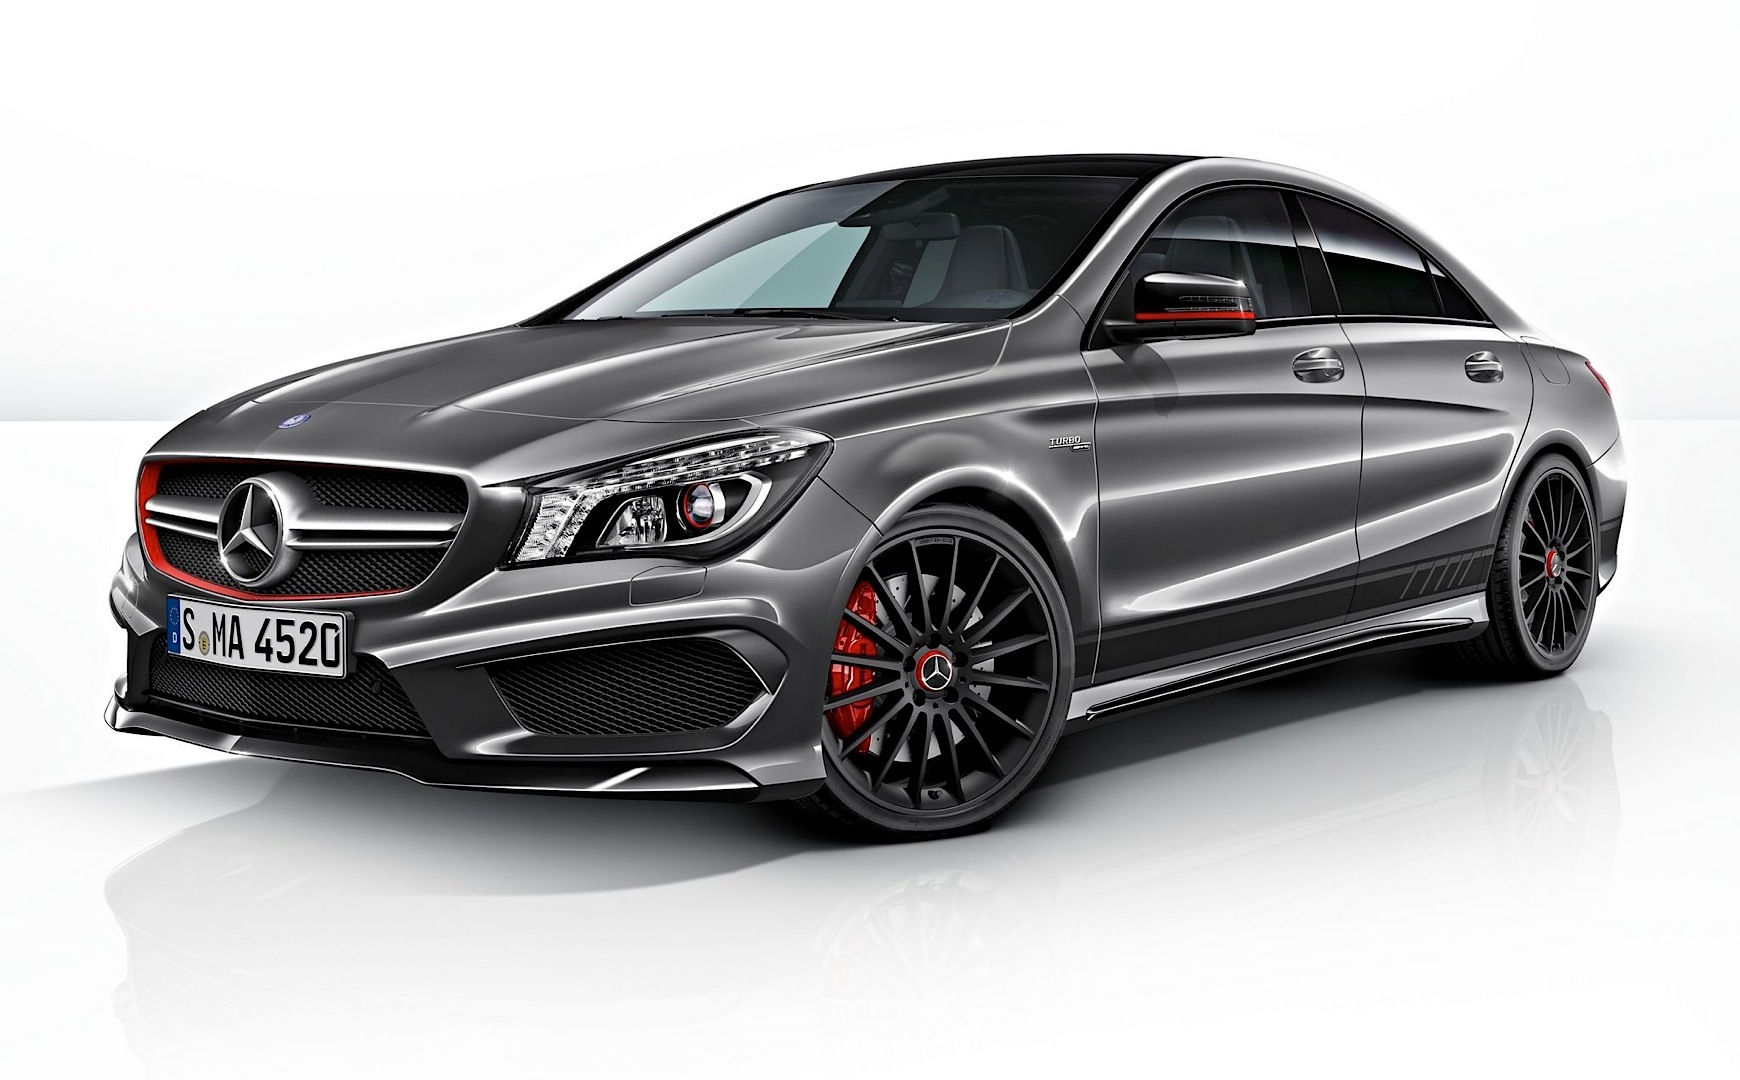 Cla 45 Amg Edition 1 Sales Are A Go Autoevolution